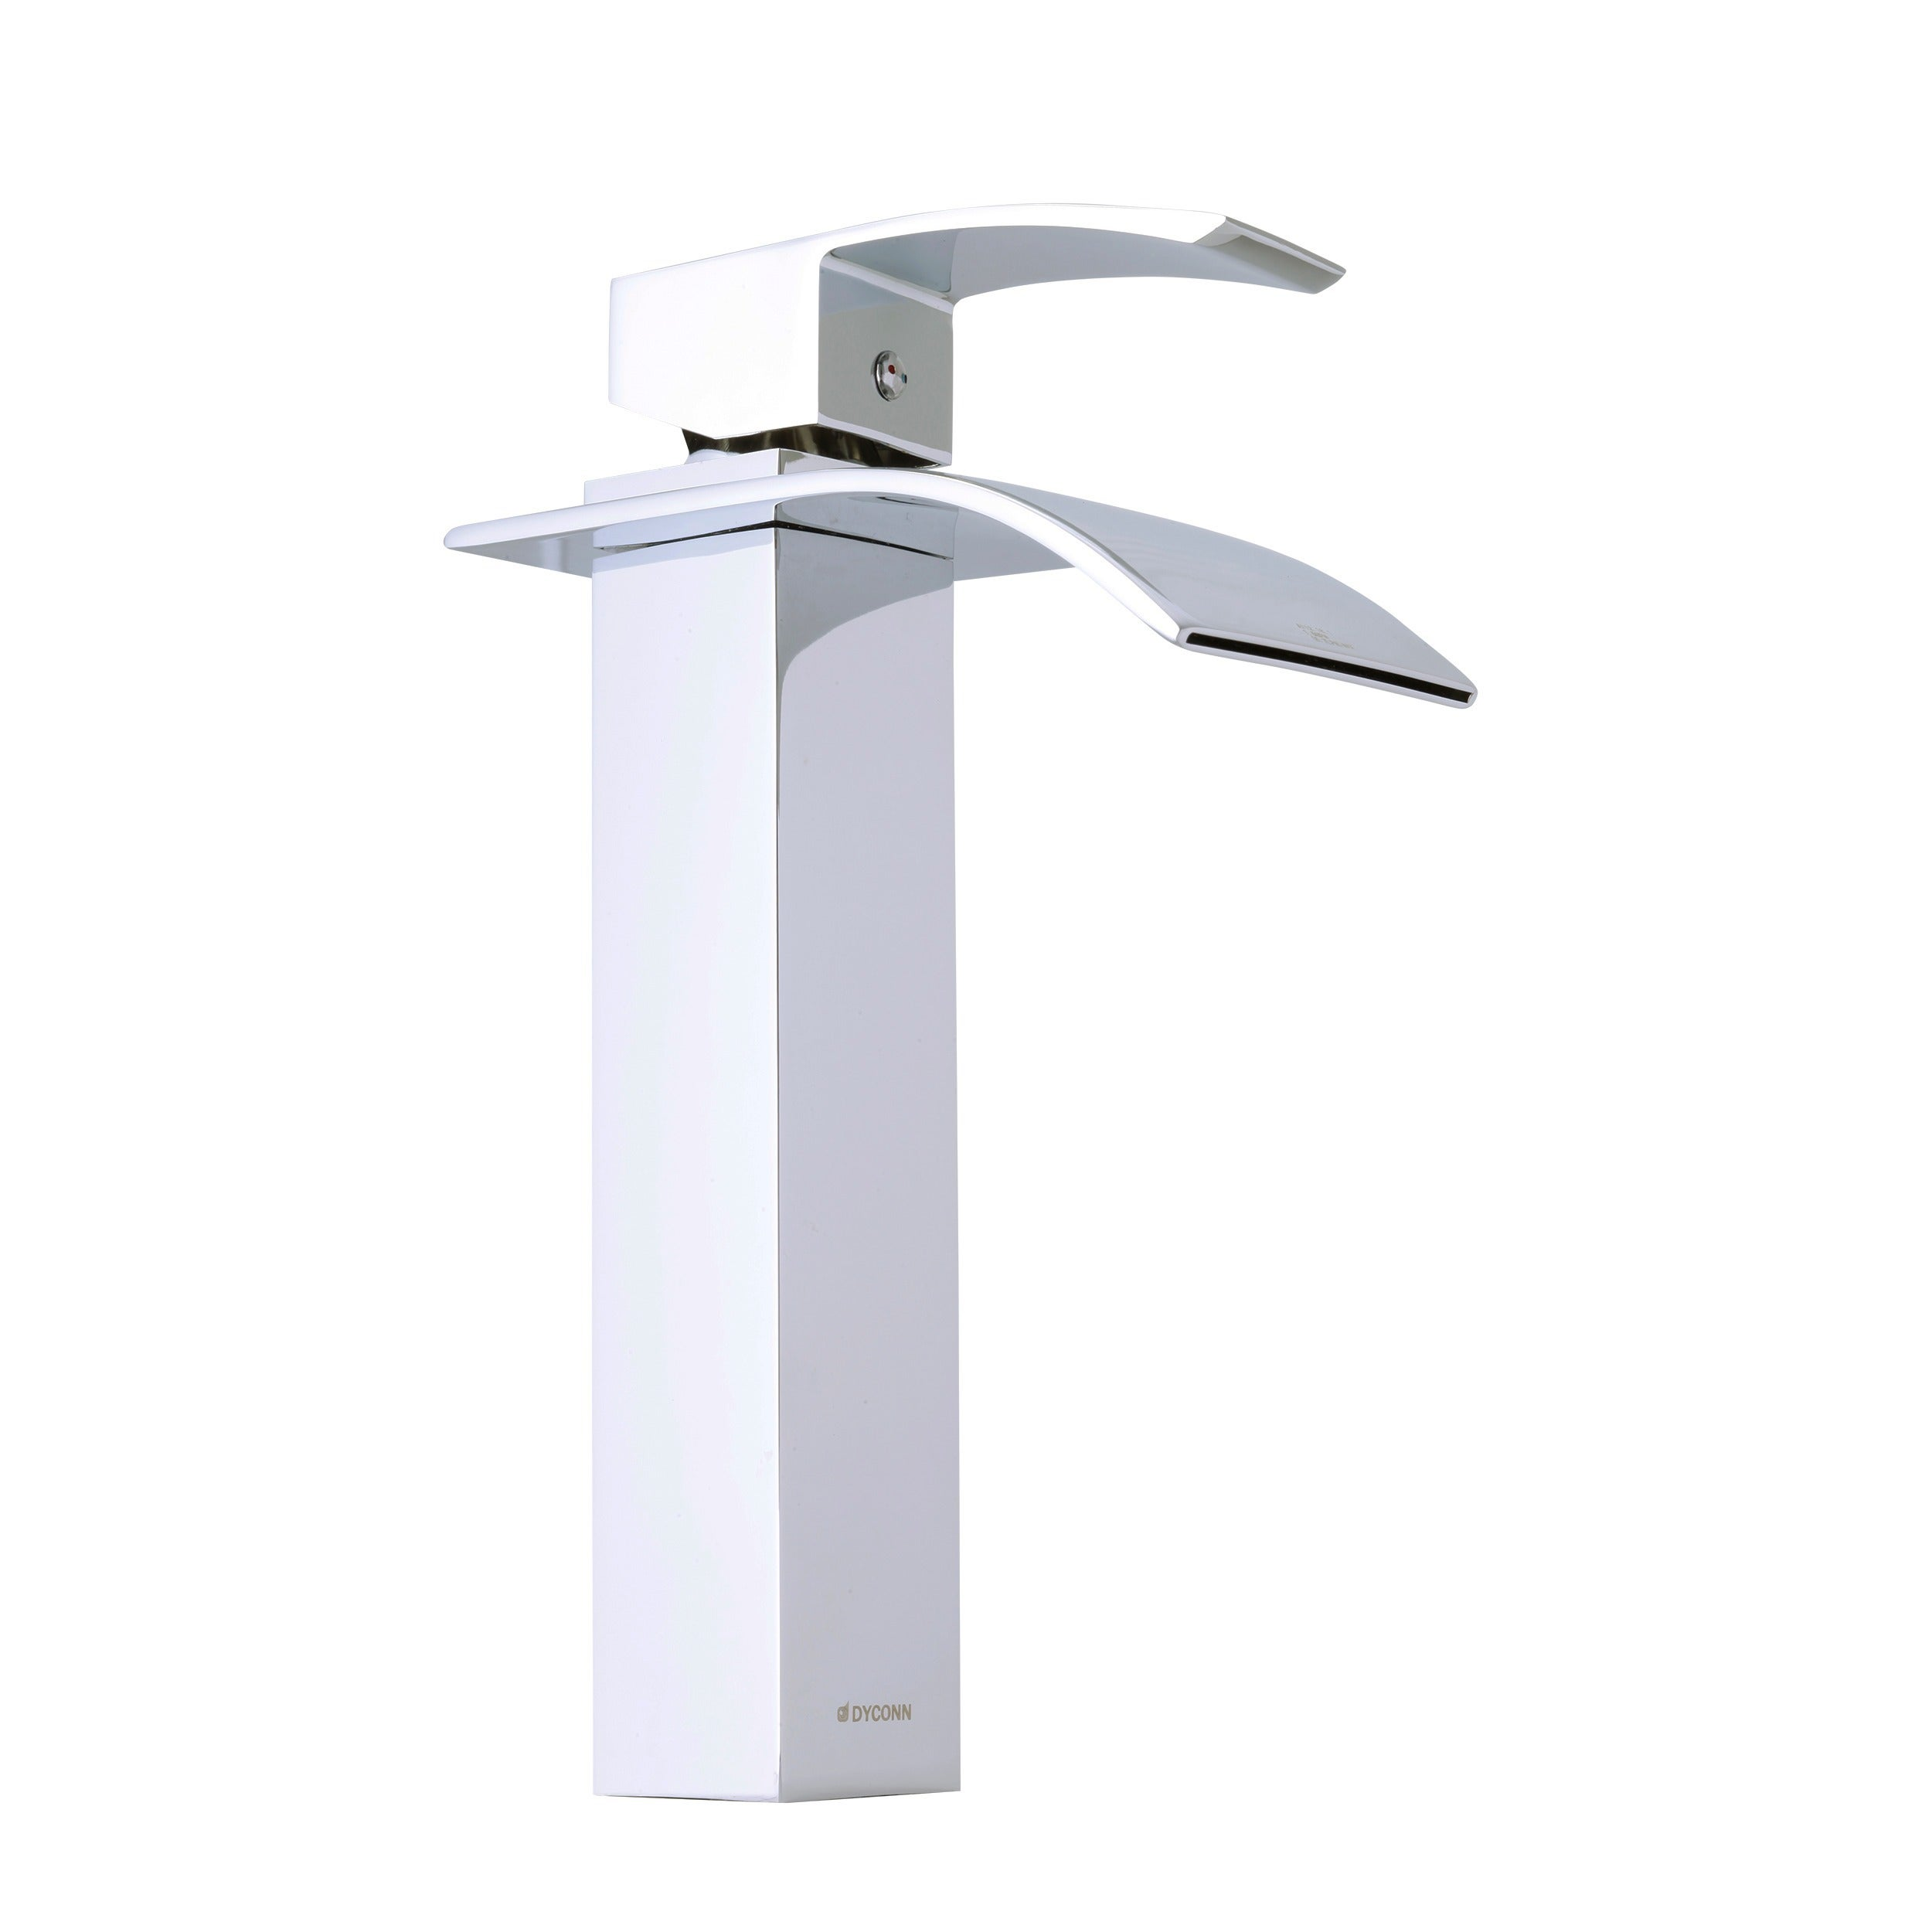 widespread mesmerizing faucets for modern solid fabulous ideas impressive shower outstanding and best hole bath with your single sinks vessel brushed brush awesome beautiful design attractive bathroom endearing lavatory nickel faucet